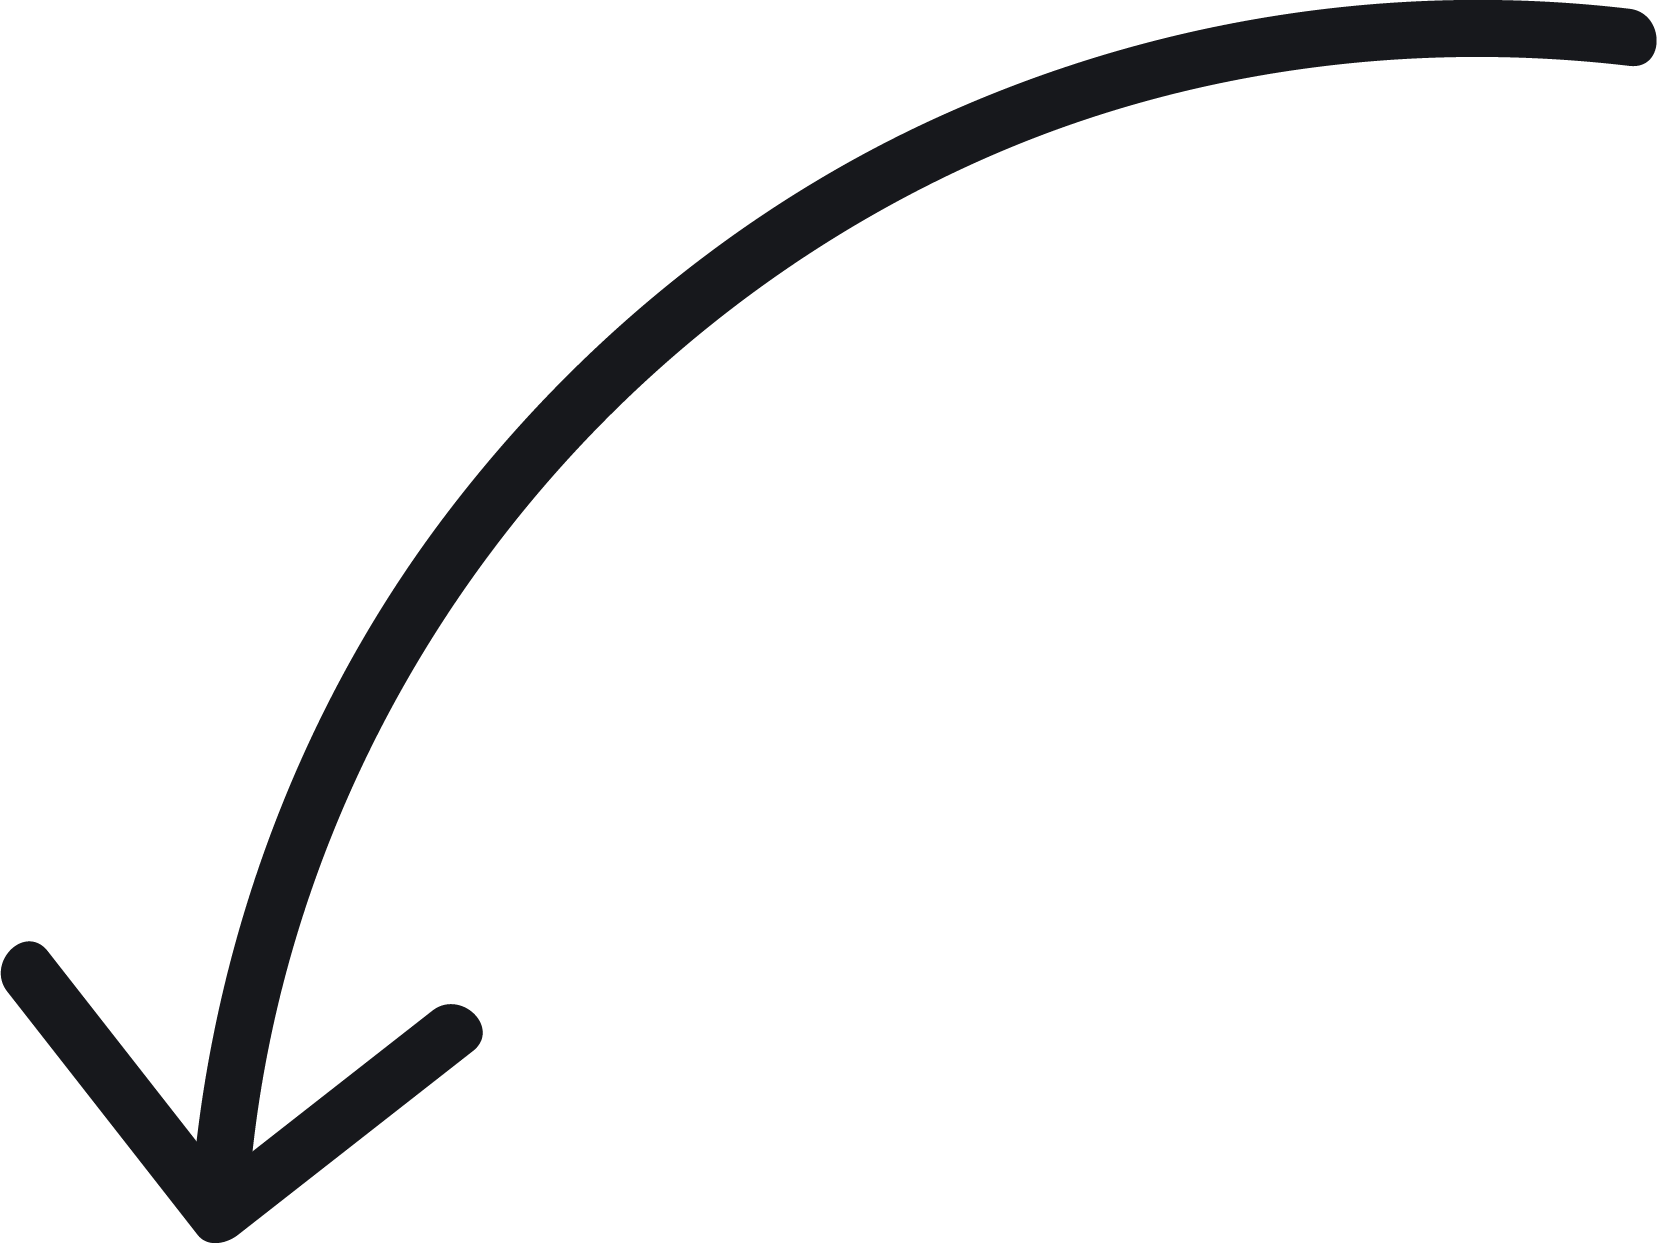 tild3661-3063-4232-b764-643939303134__curved-arrow-png-fre